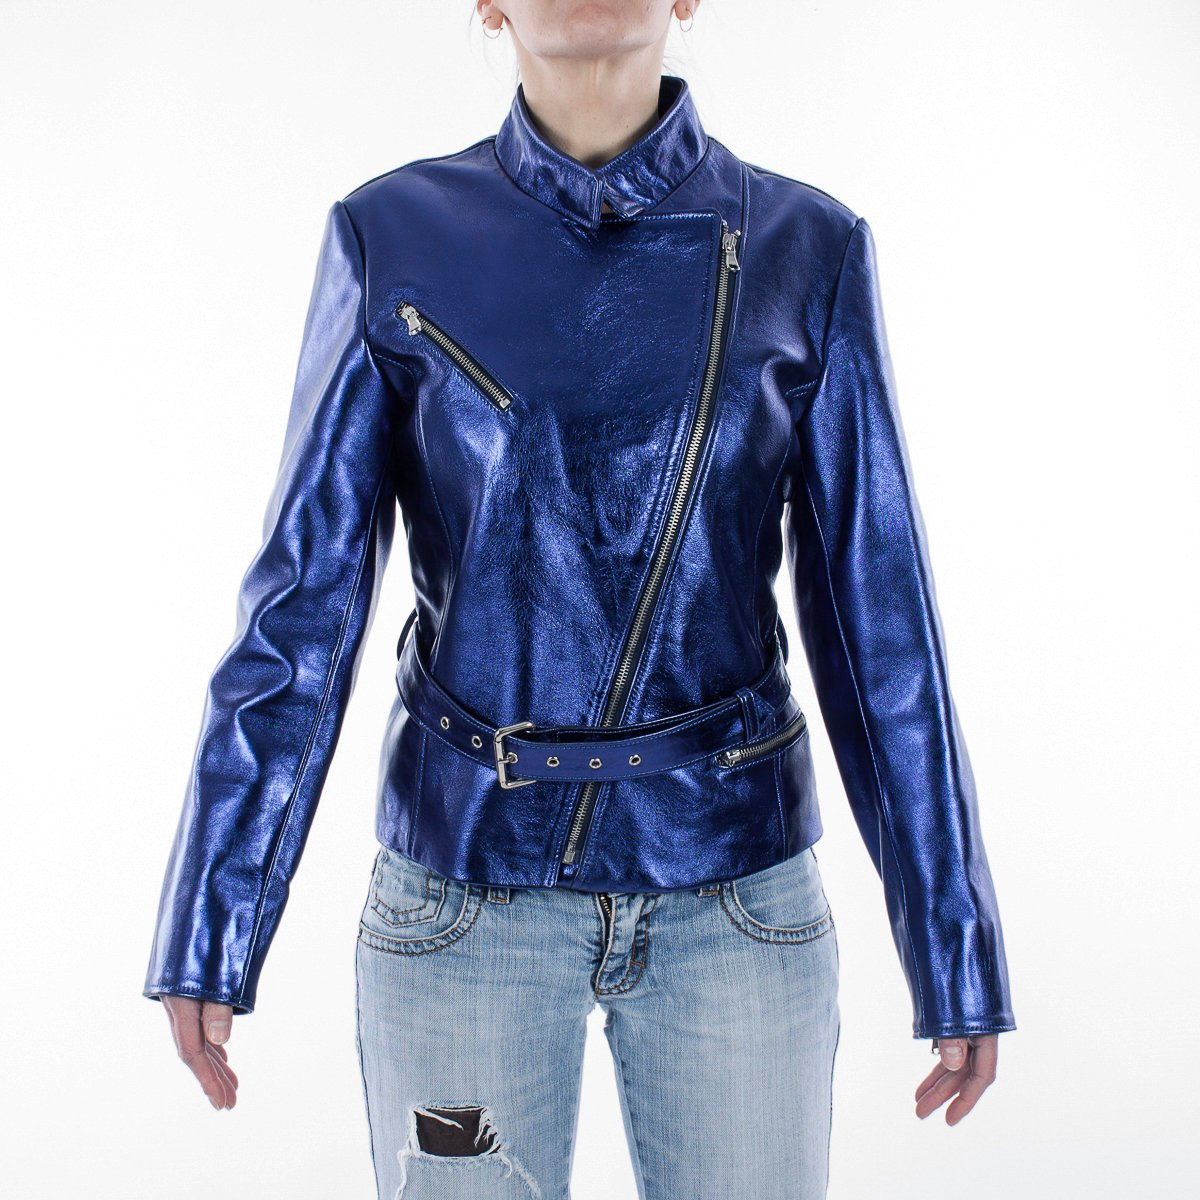 292c05612 Metallic Blue Women genuine lambskin leather biker jacket - Jackets ...